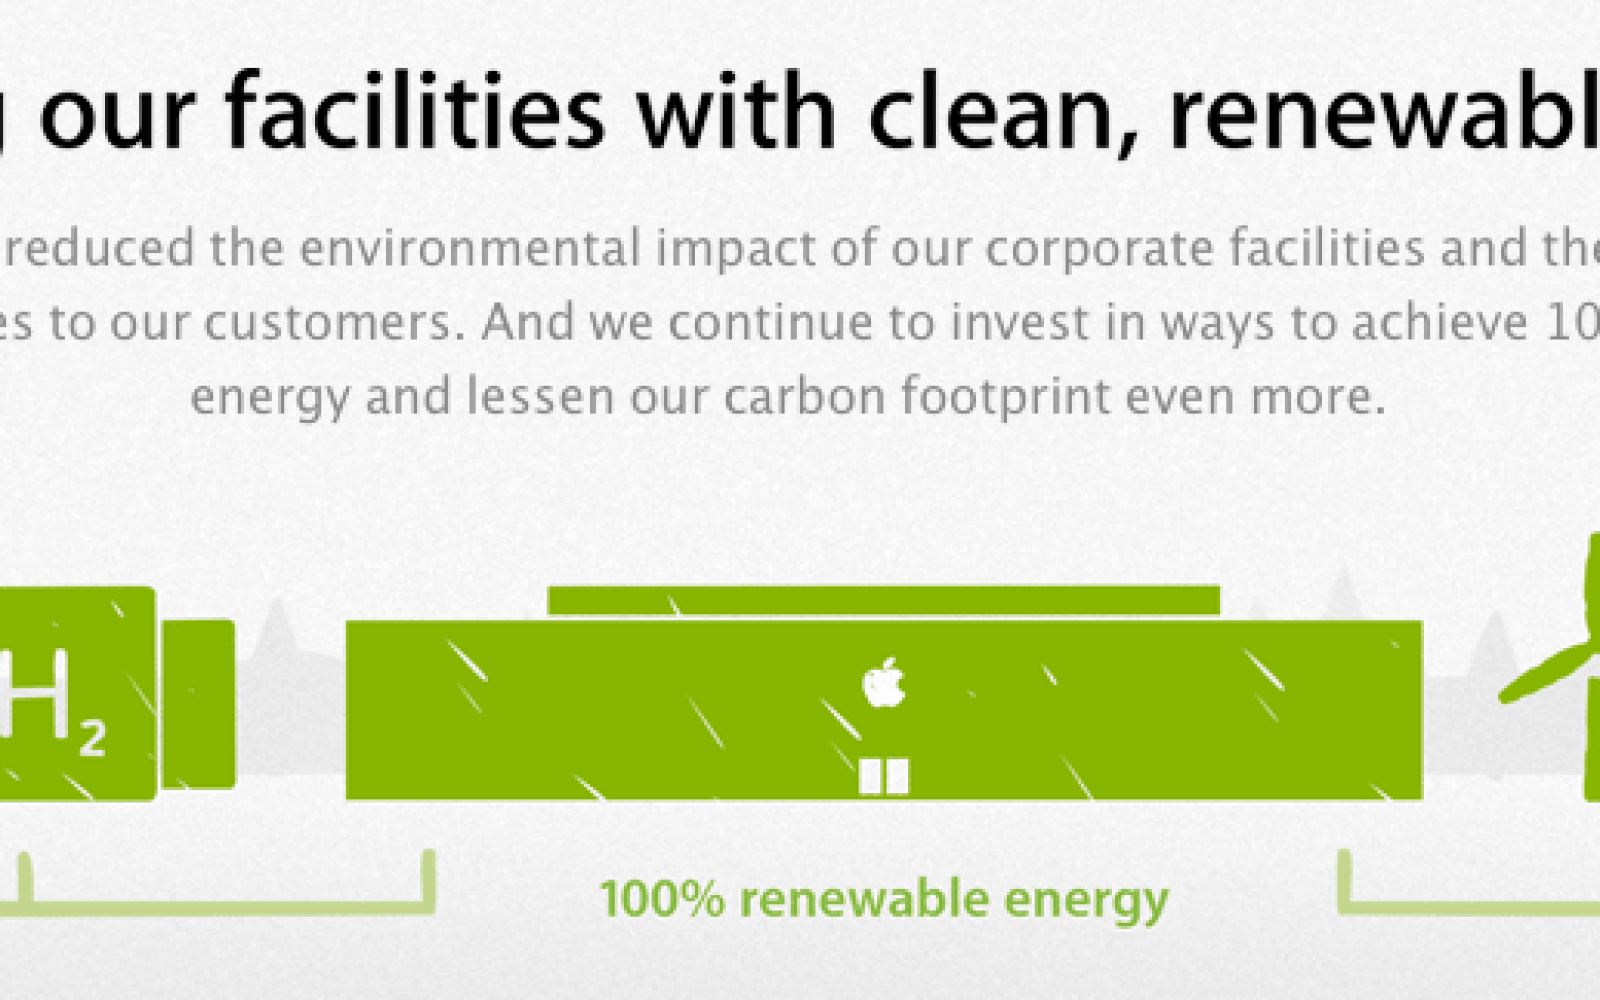 Apple ranked well in Greenpeace's 'Green Internet' report for its renewable energy efforts